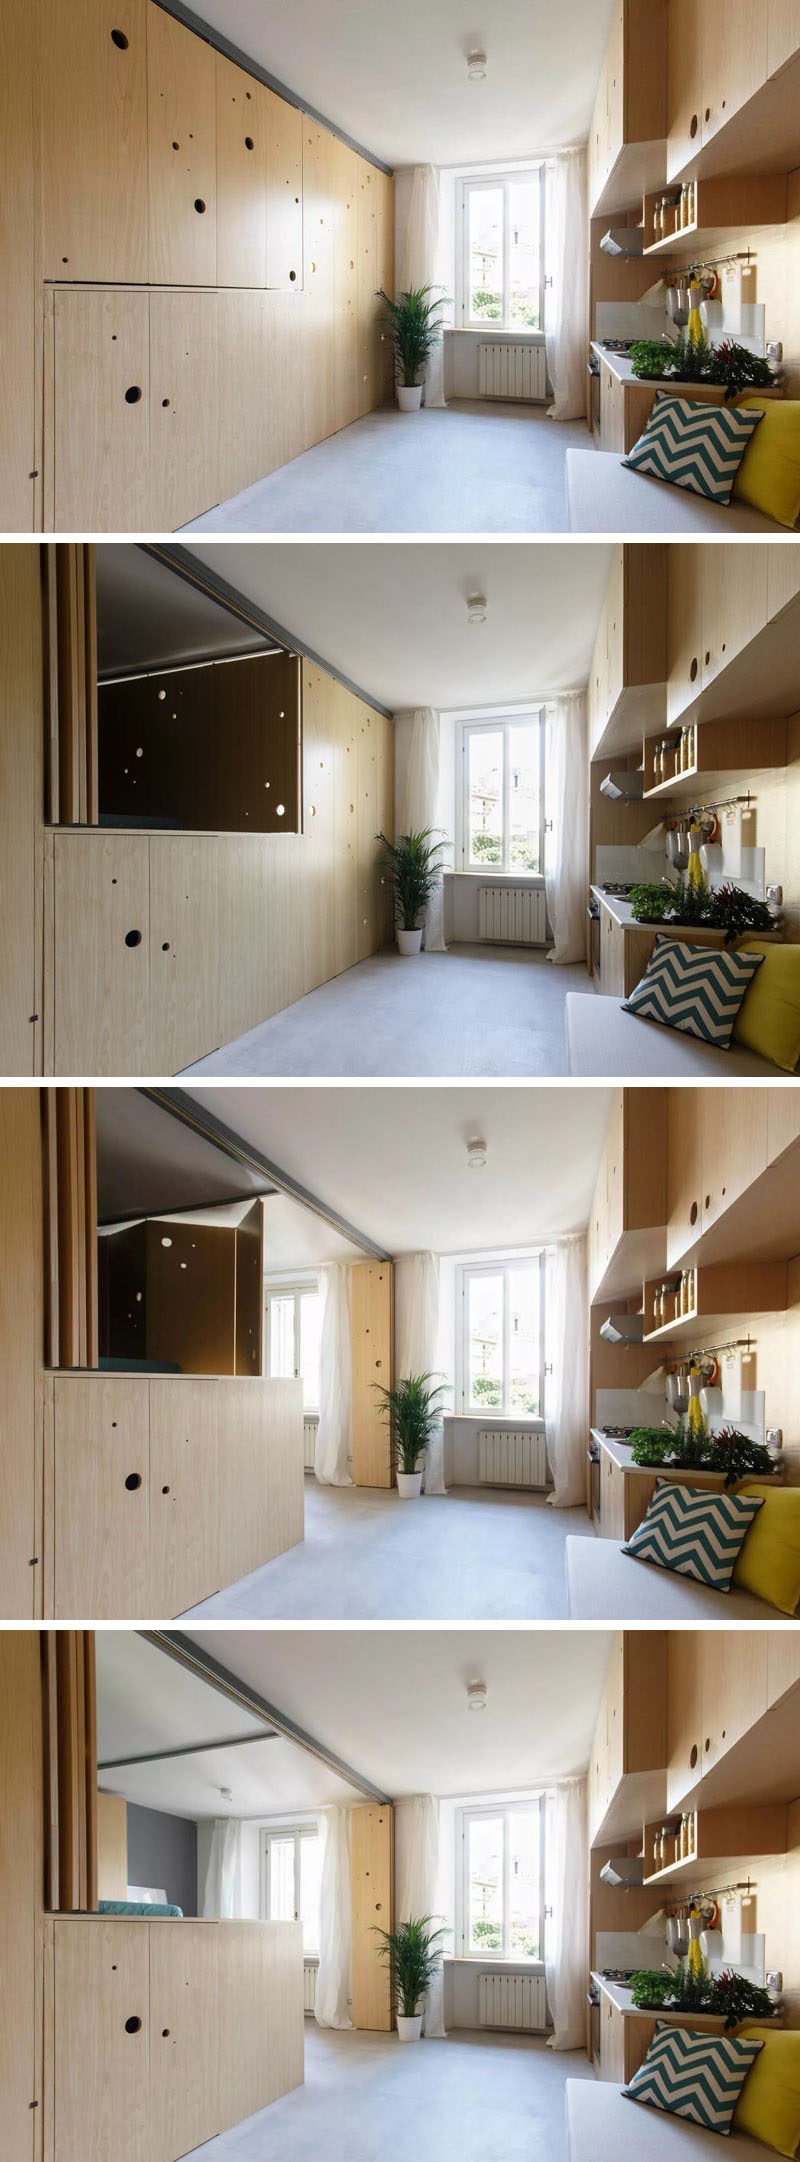 This tiny apartment has a wall that opens up to reveal the bedroom and dining room.